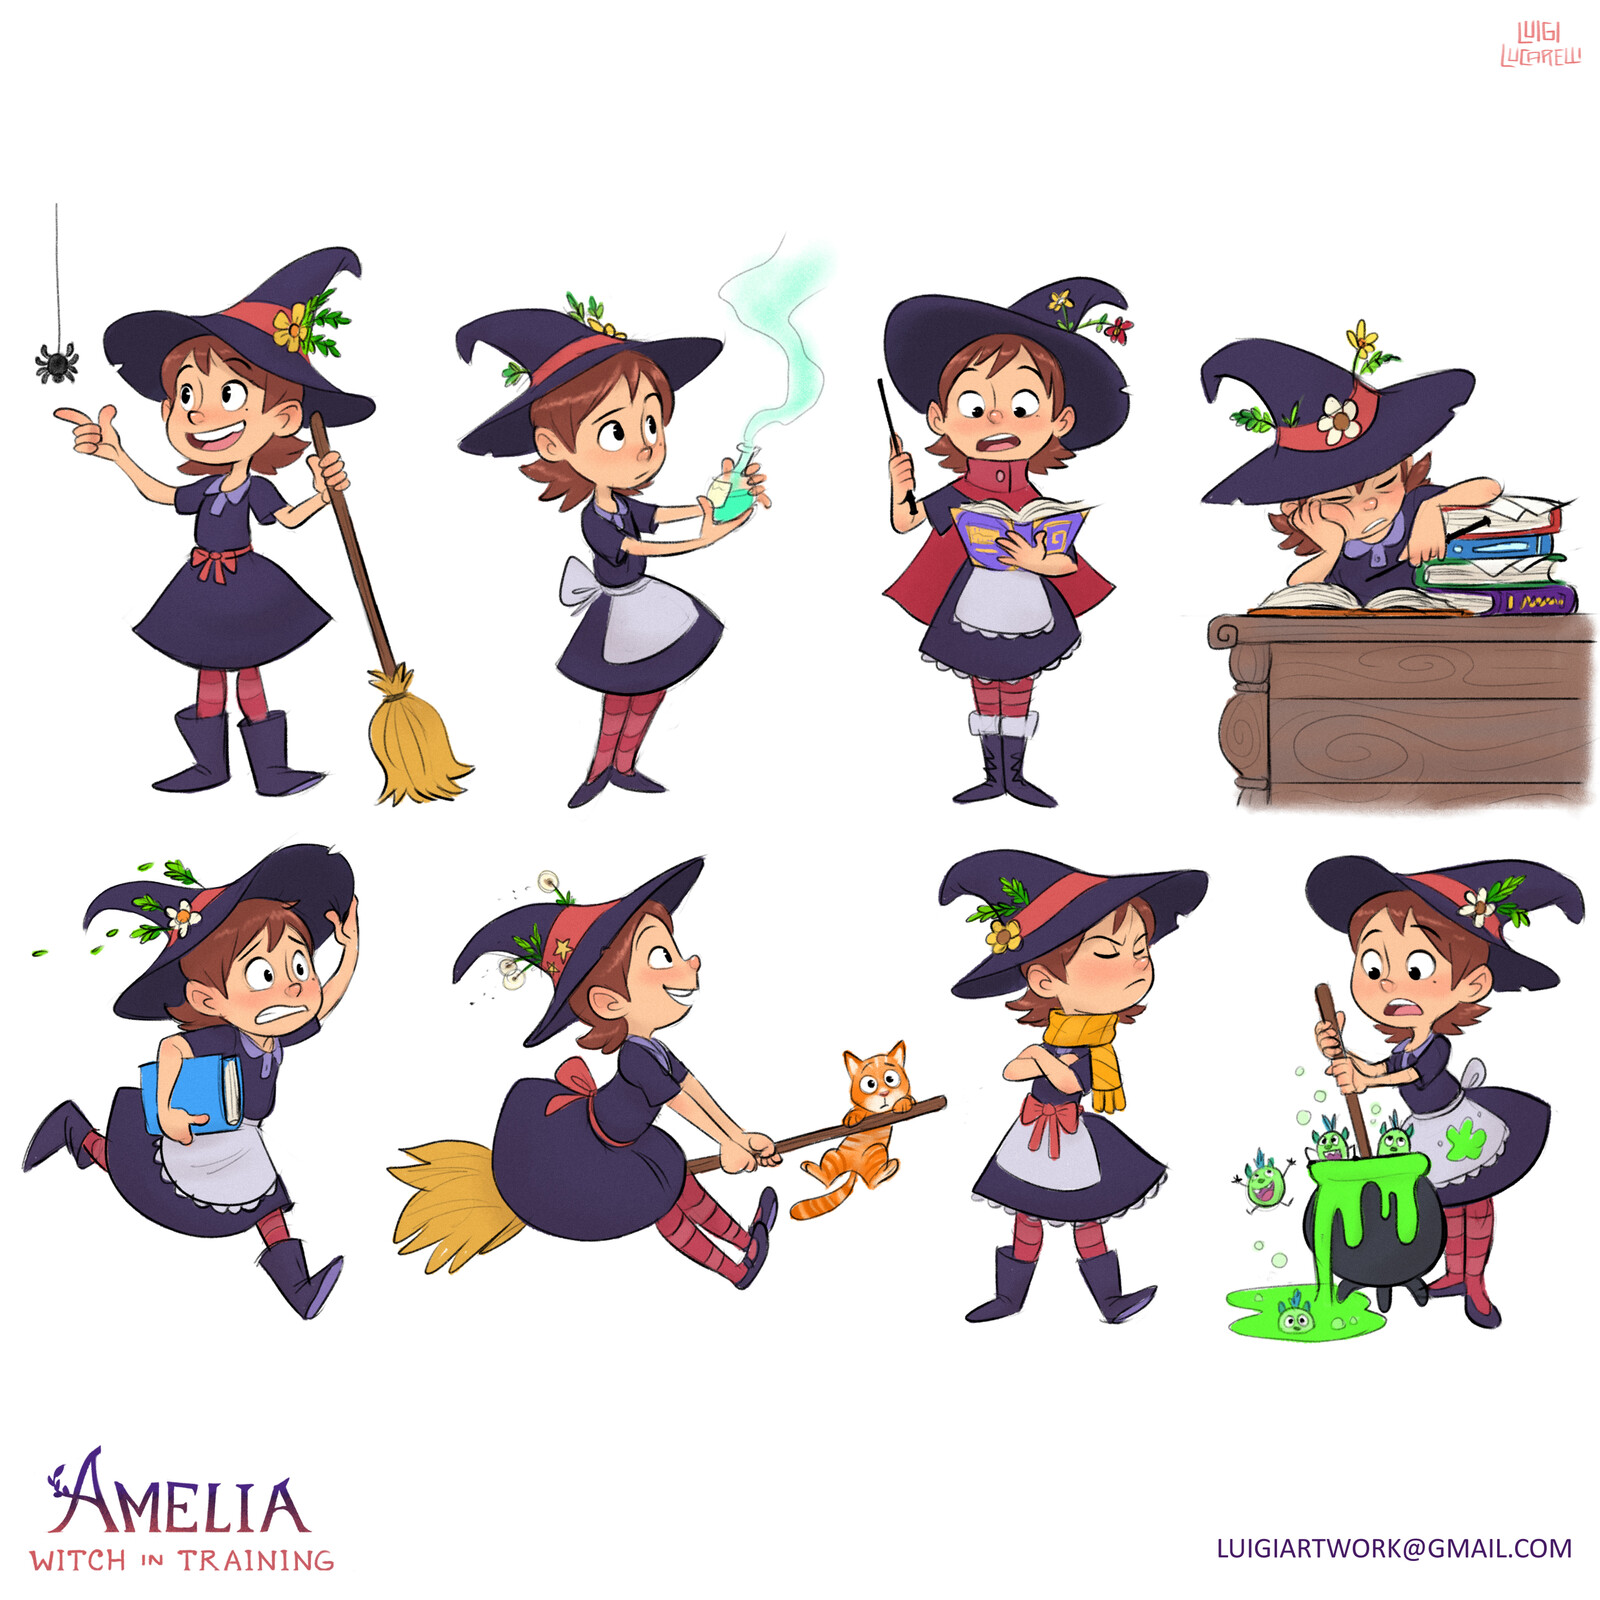 Amelia - Witch in Training